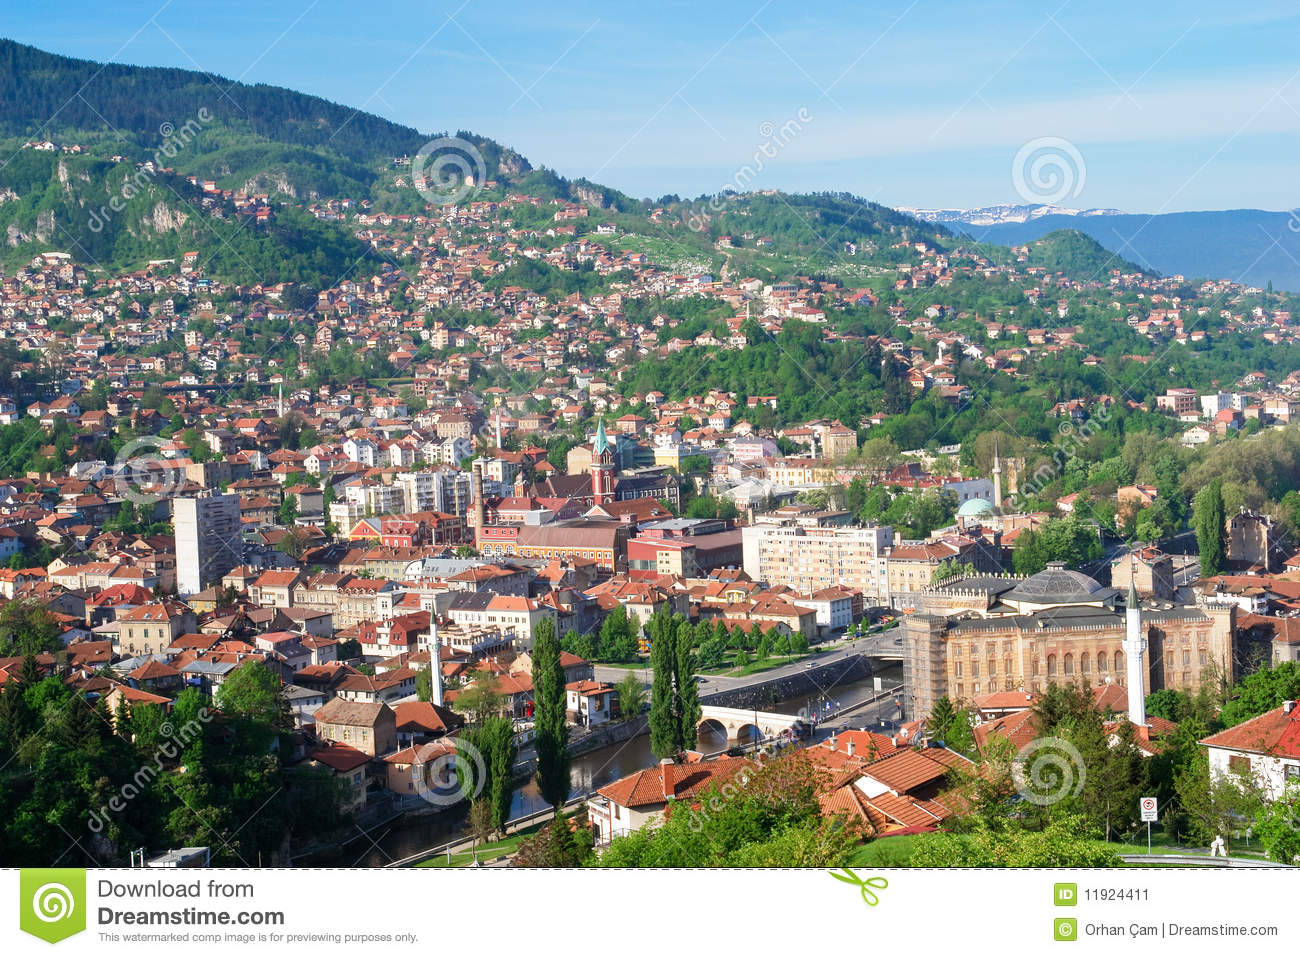 The capital of Bosnia - Sarajevo